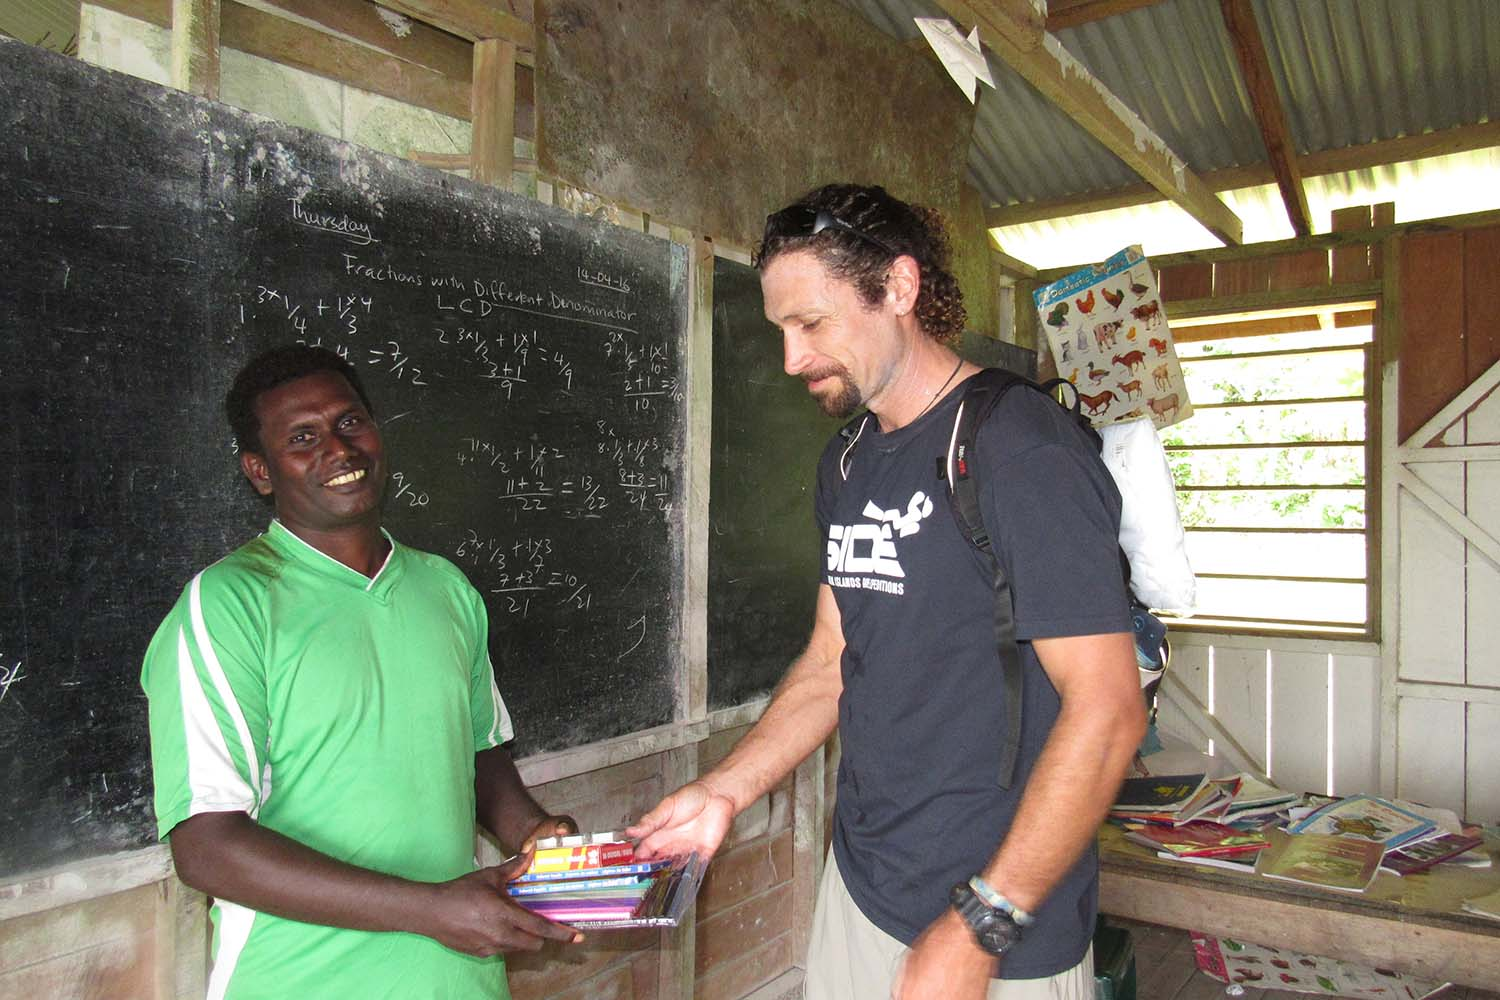 Cruise Director and teacher in schoolhouse at Peava Village